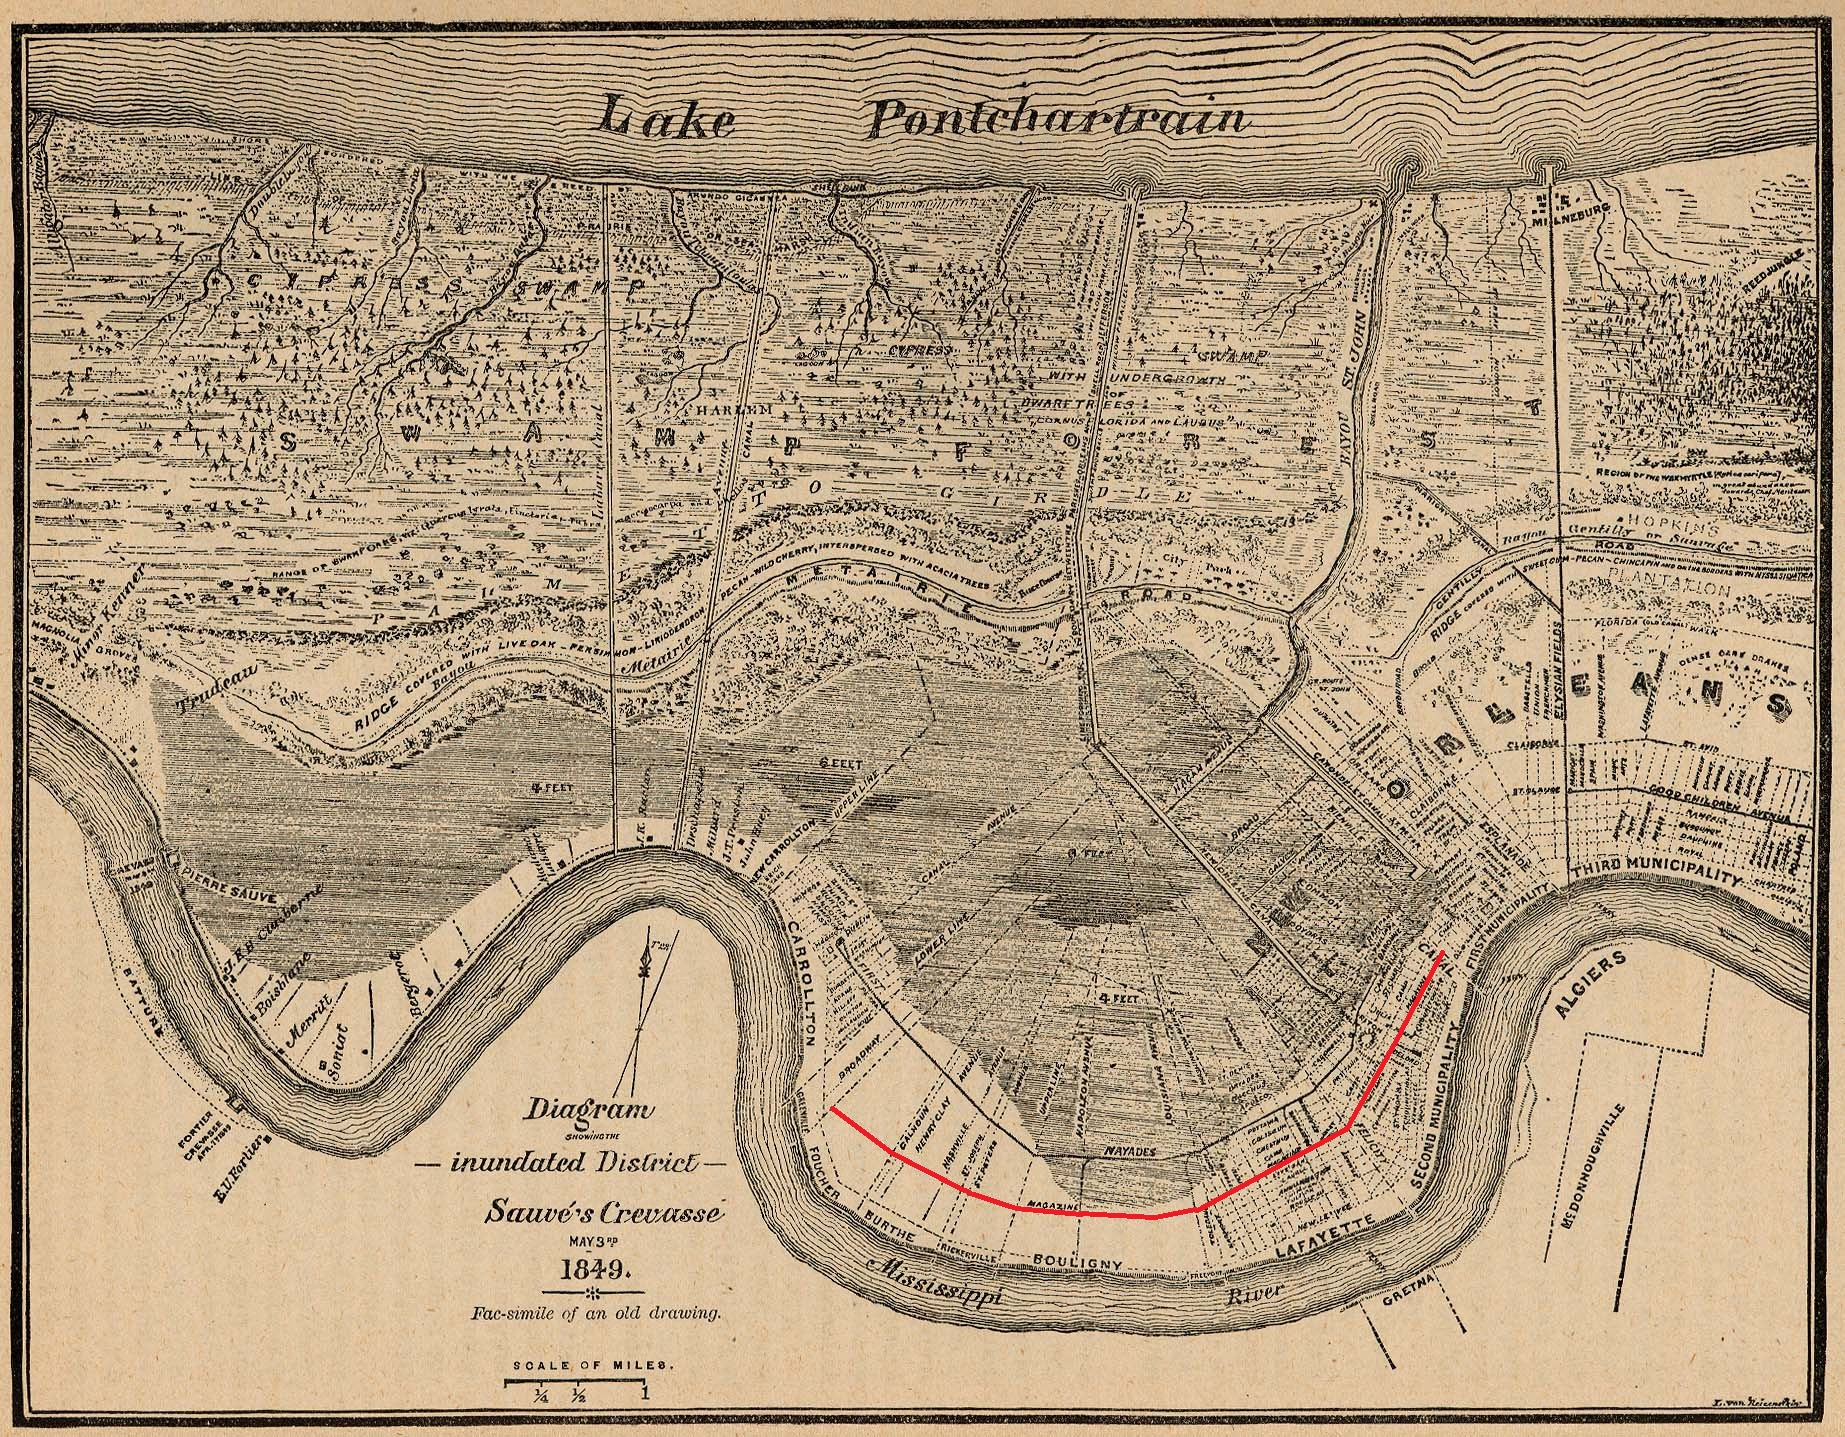 Magazine Street New Orleans Map.File New Orleans Map 1849 With Magazine Street Highlighted In Red